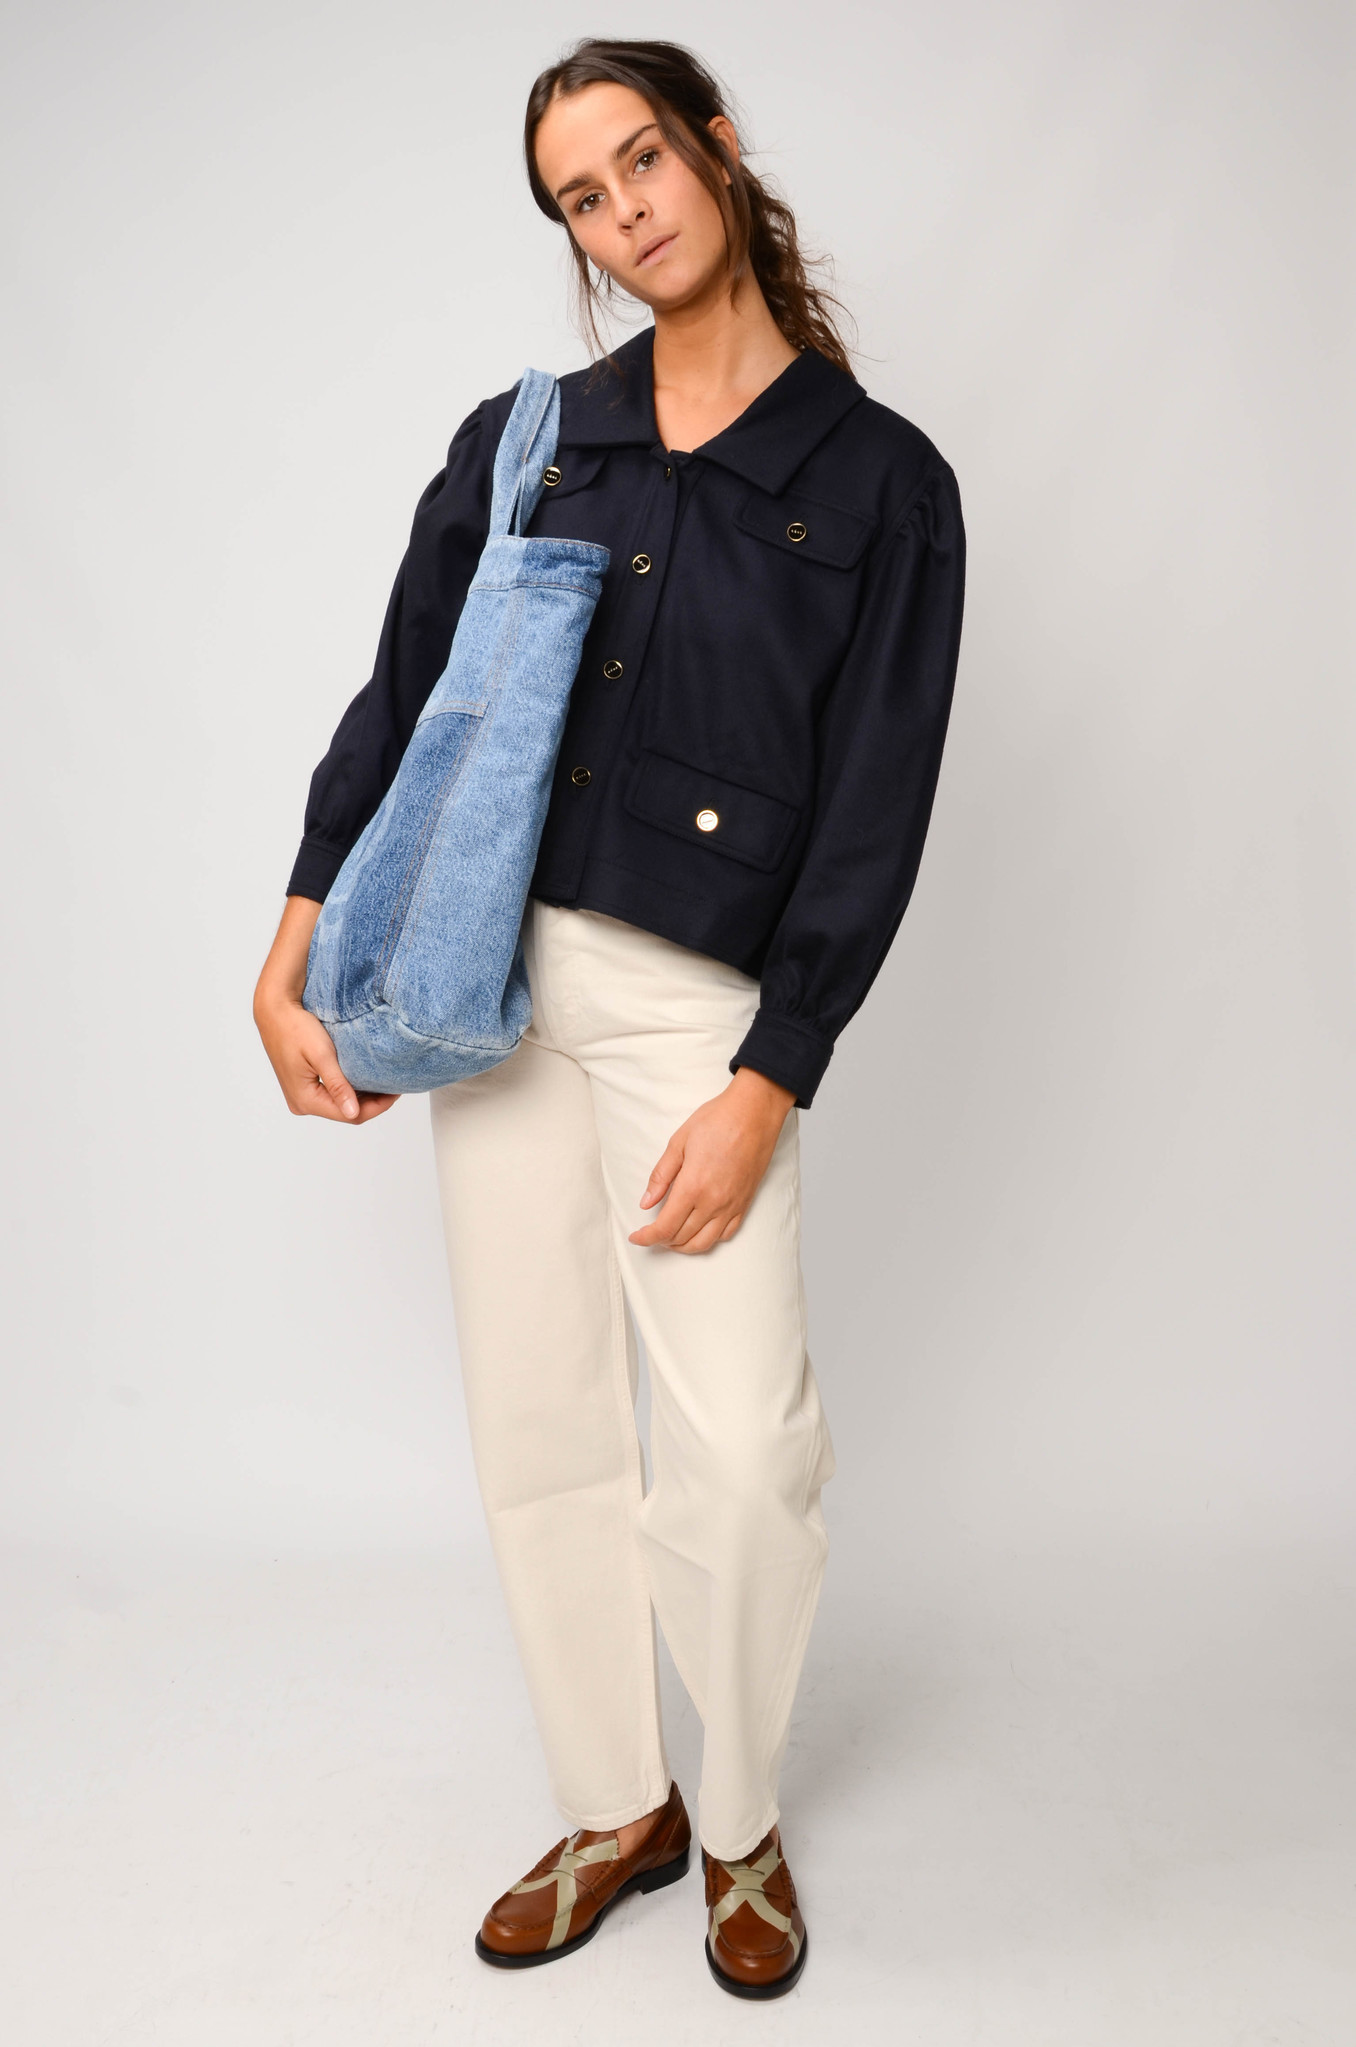 CATHERIN BLOUSE IN NAVY-2